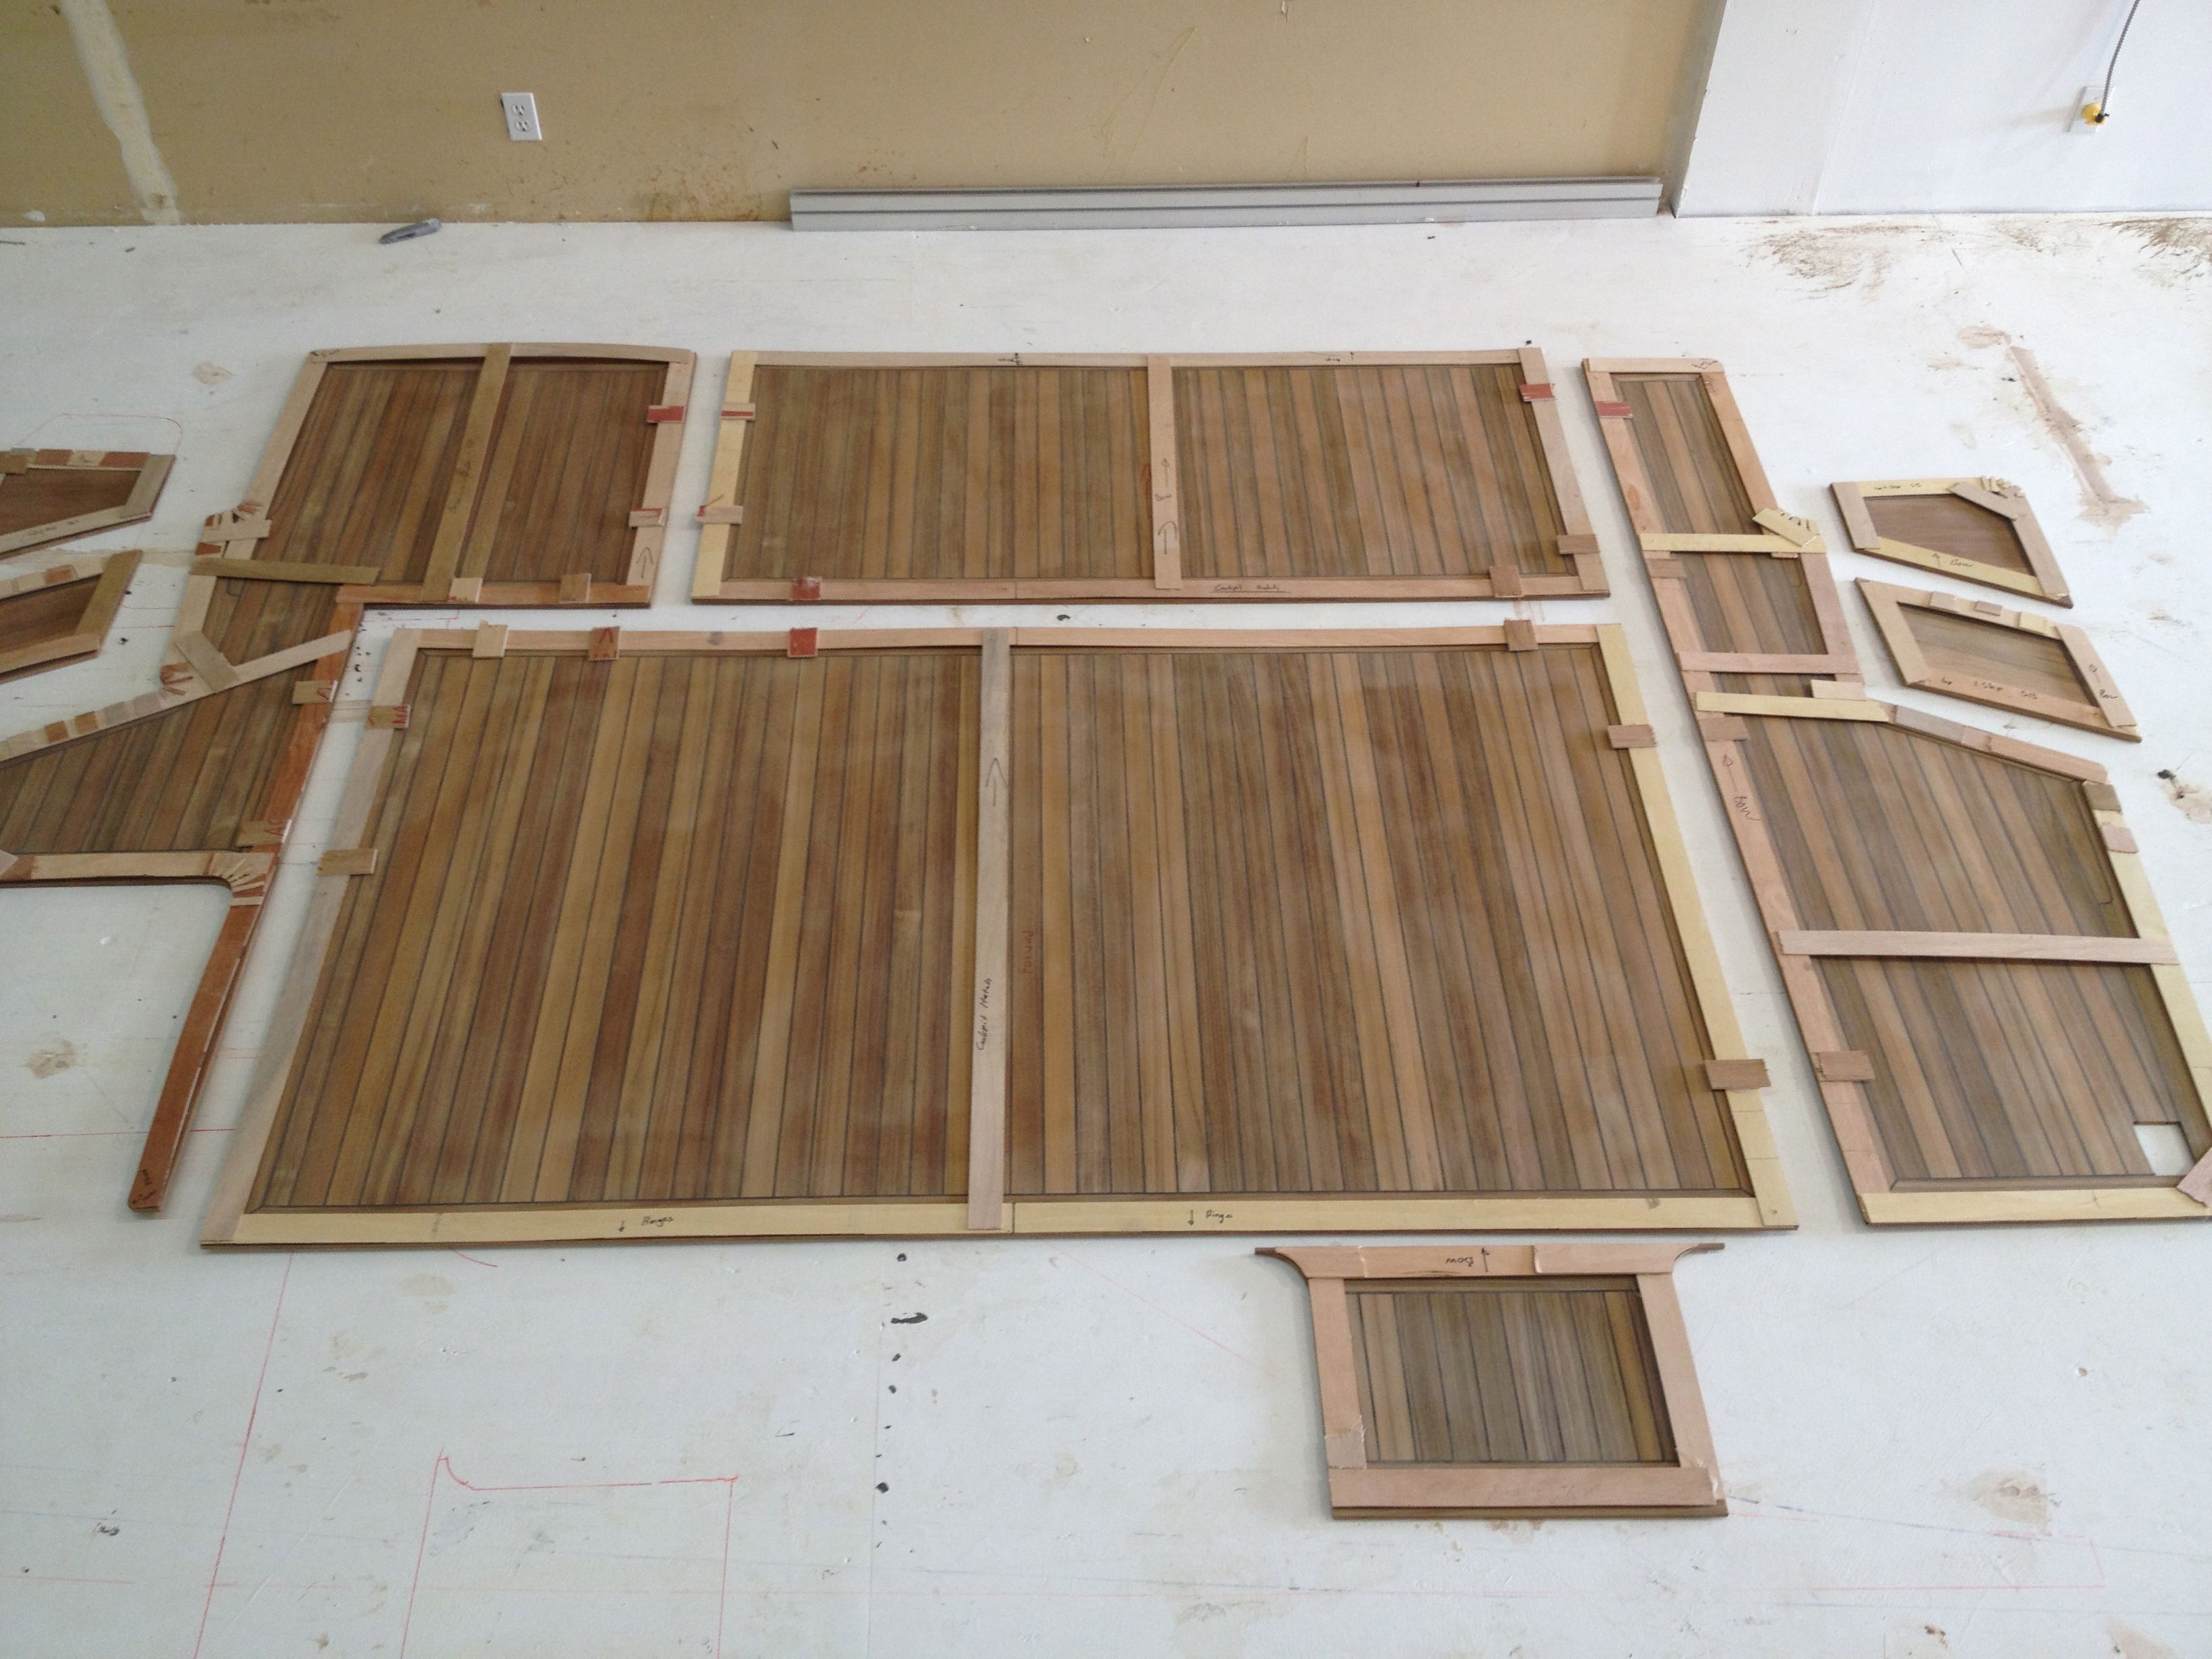 Decking Panels Custom Teak Decking Panels Pre Cut Pre Trimmed To Size Ready